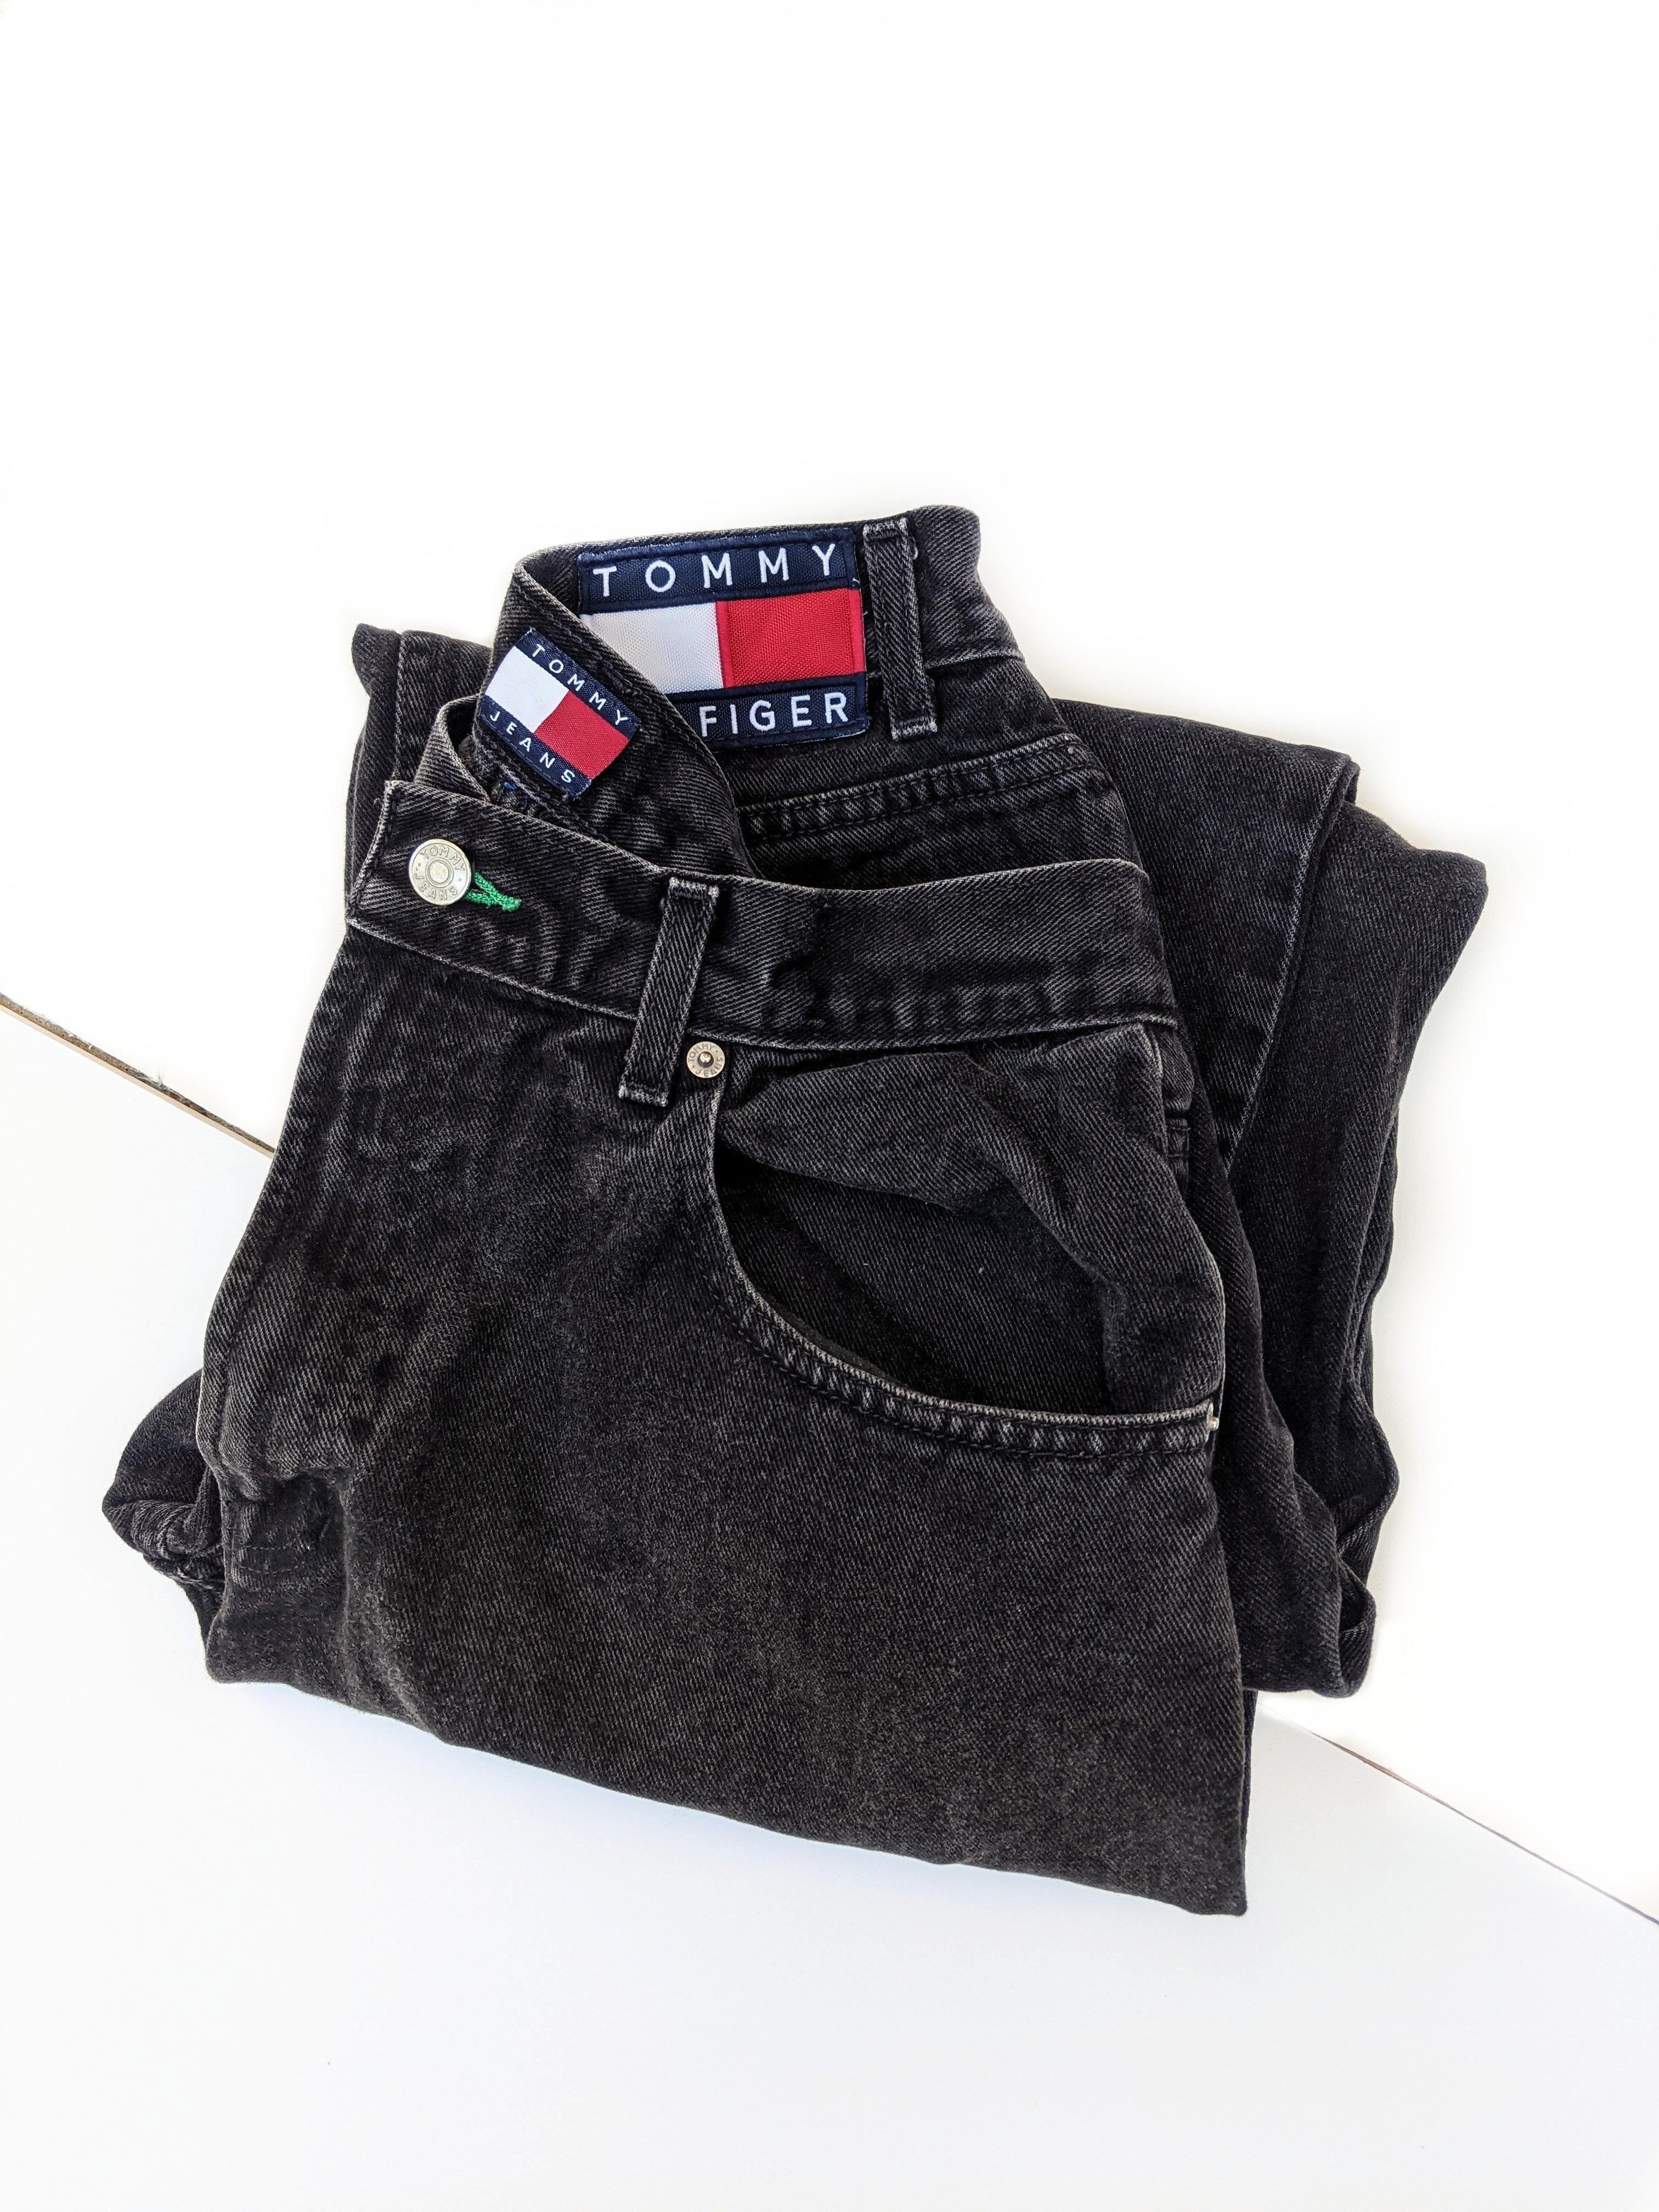 90's Tommy Patch Jeans (29-30)